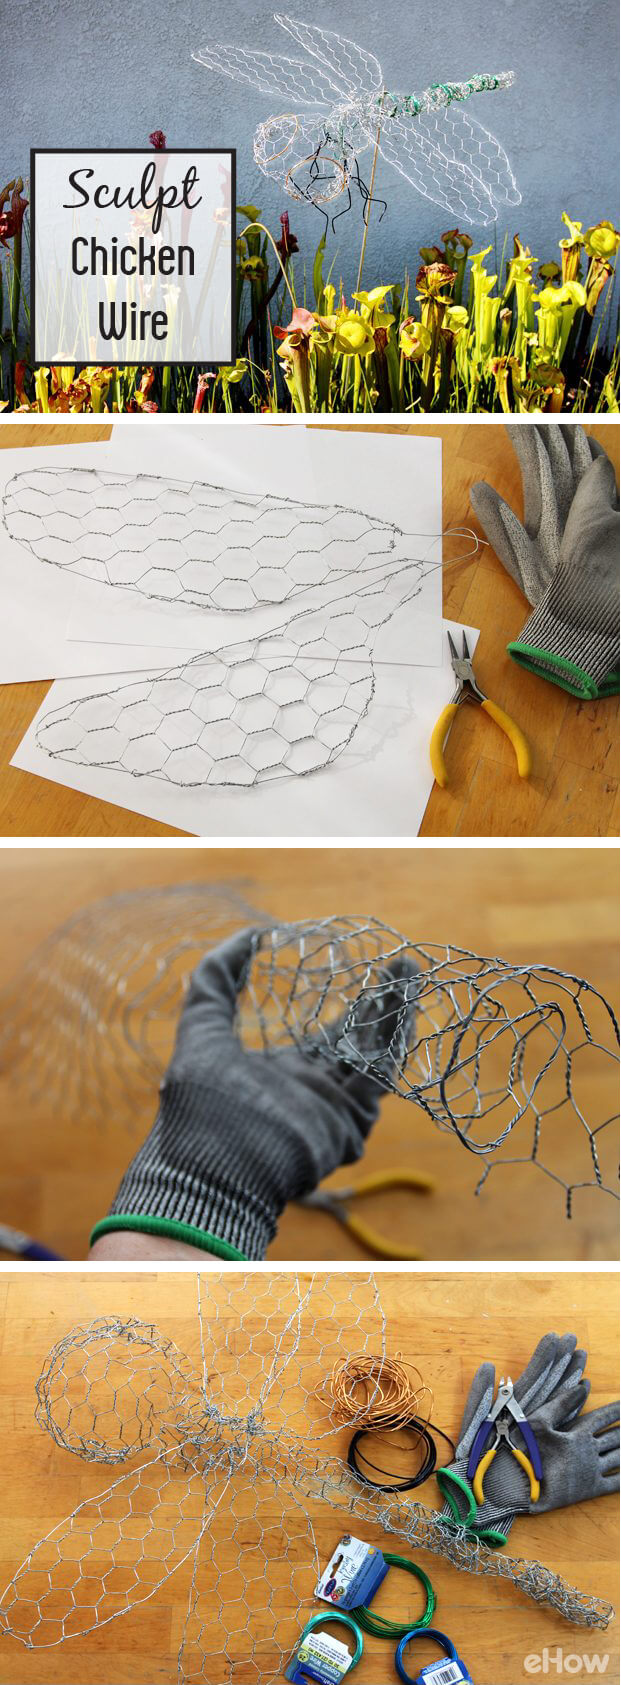 Create This Easy Dragonfly with Wire